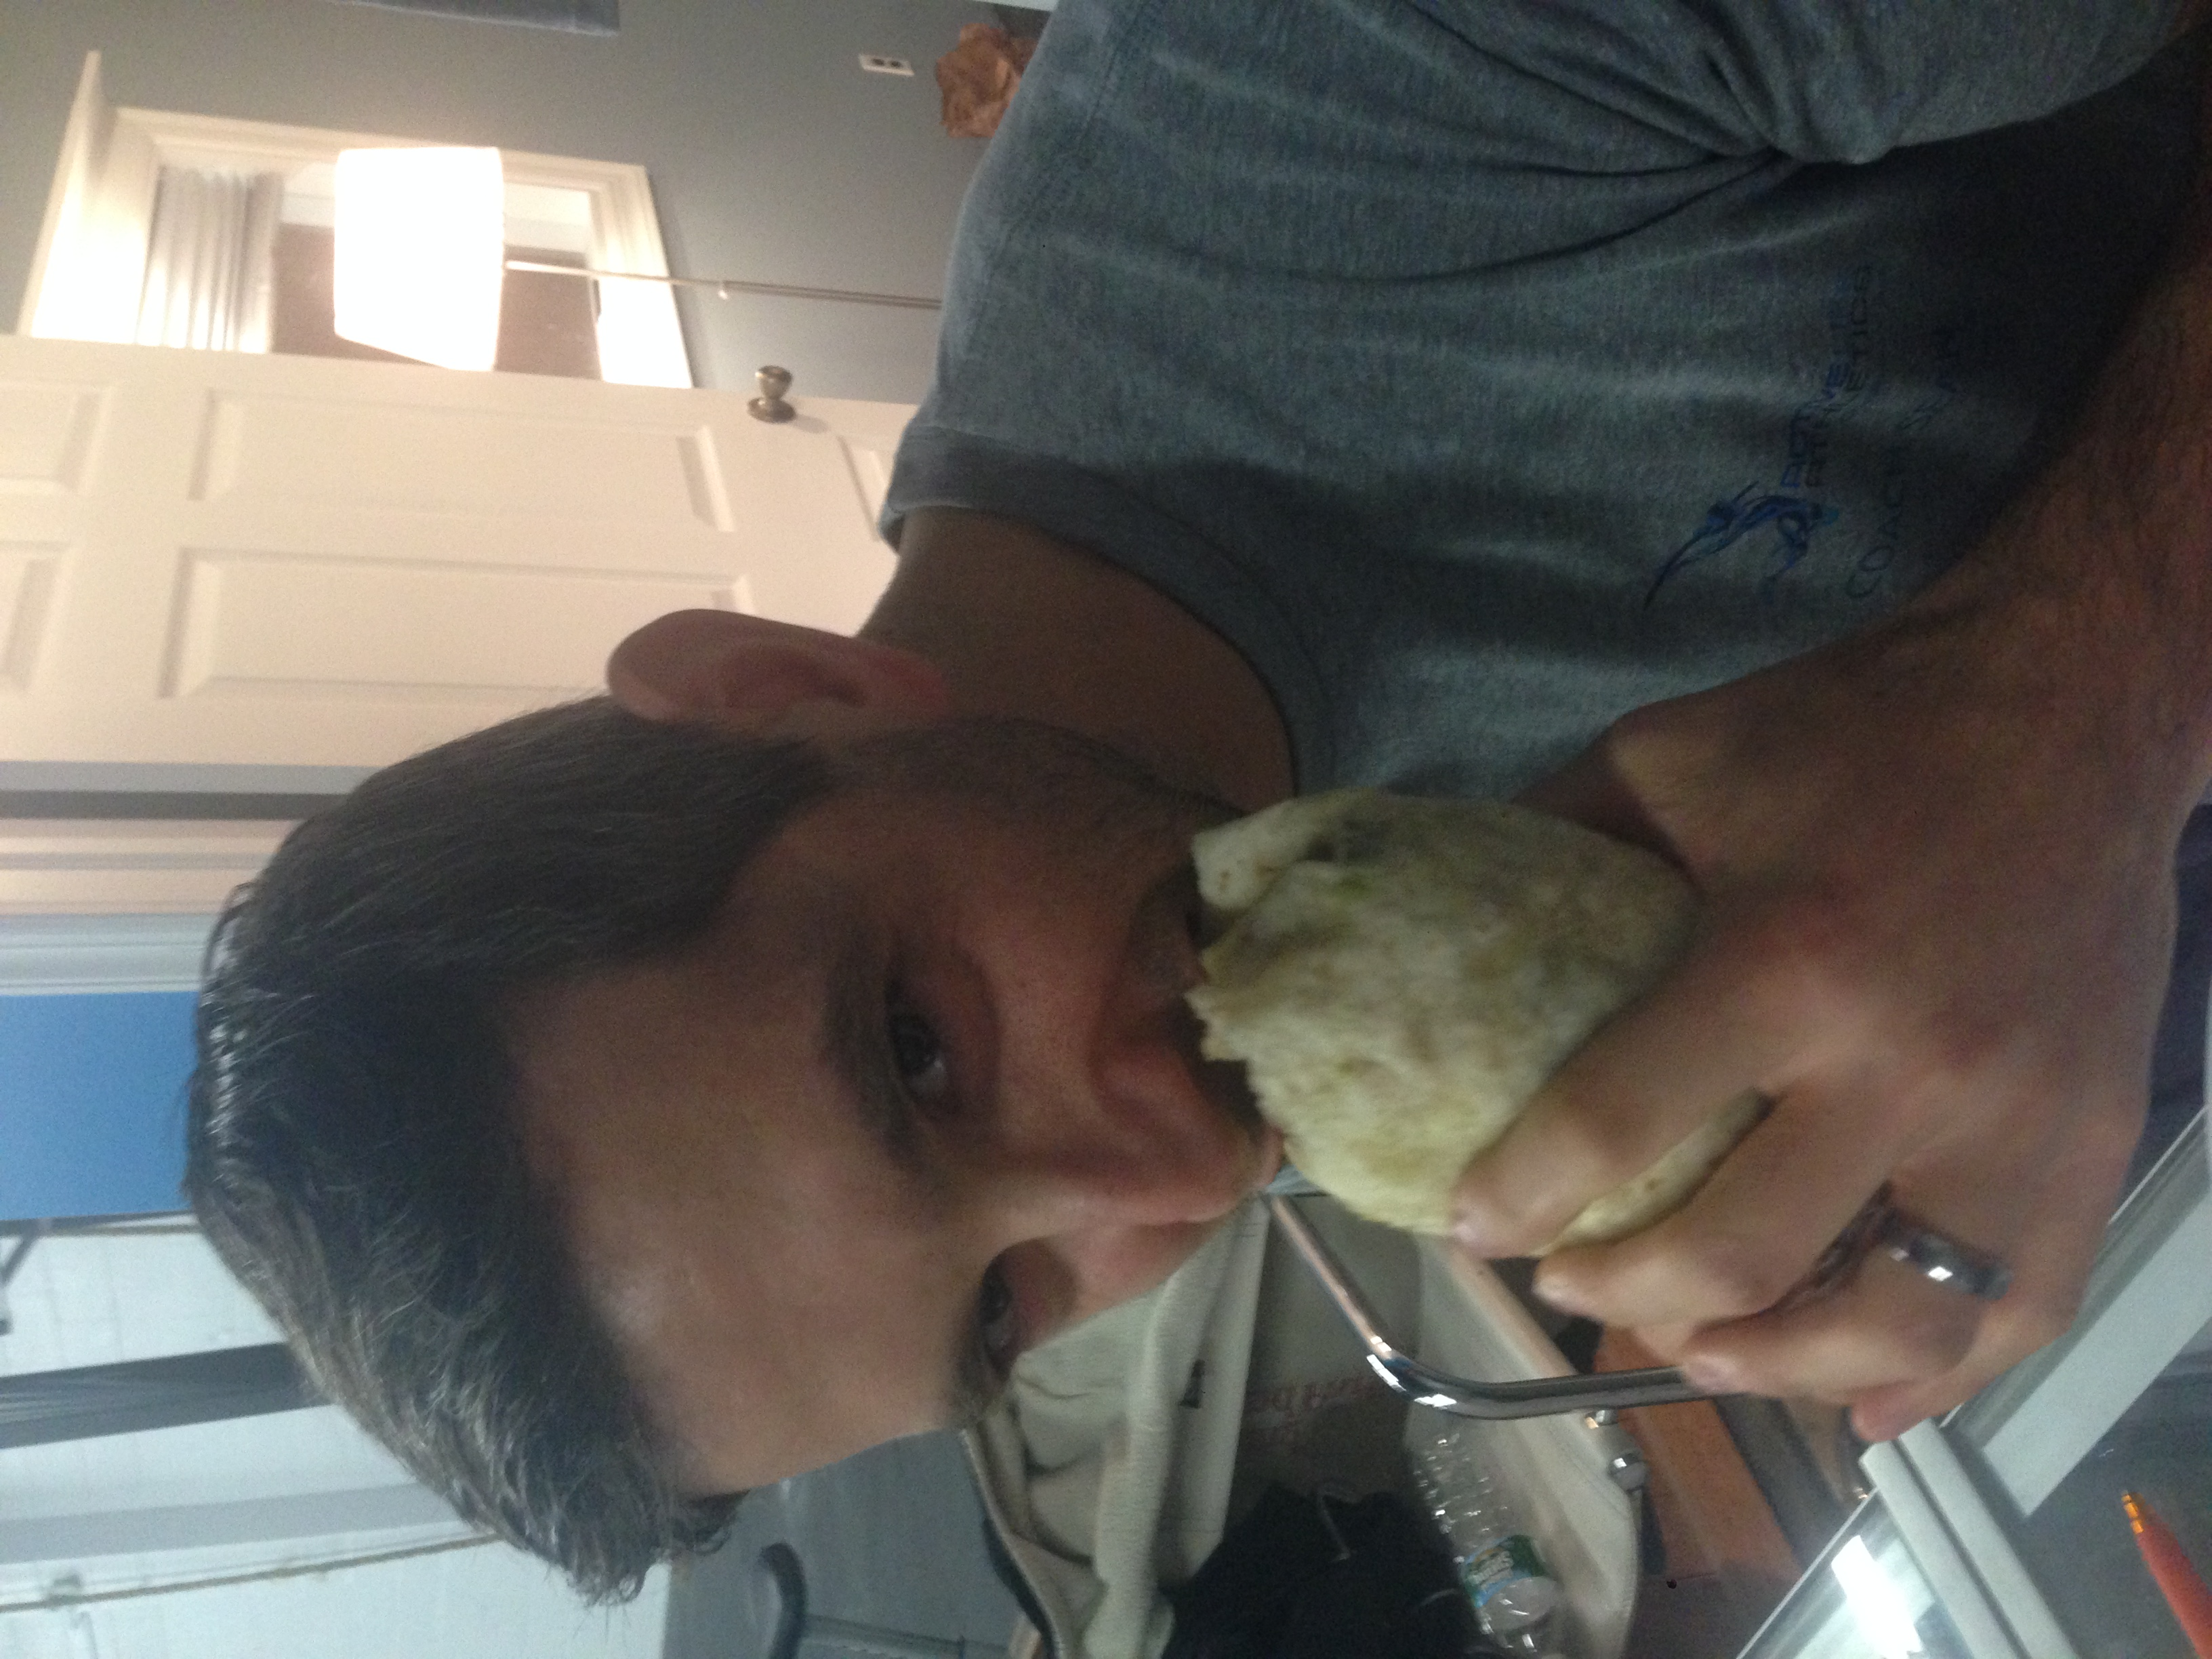 DID YOU GUYS KNOW CHIPOTLE OPENED? SEAN DID!